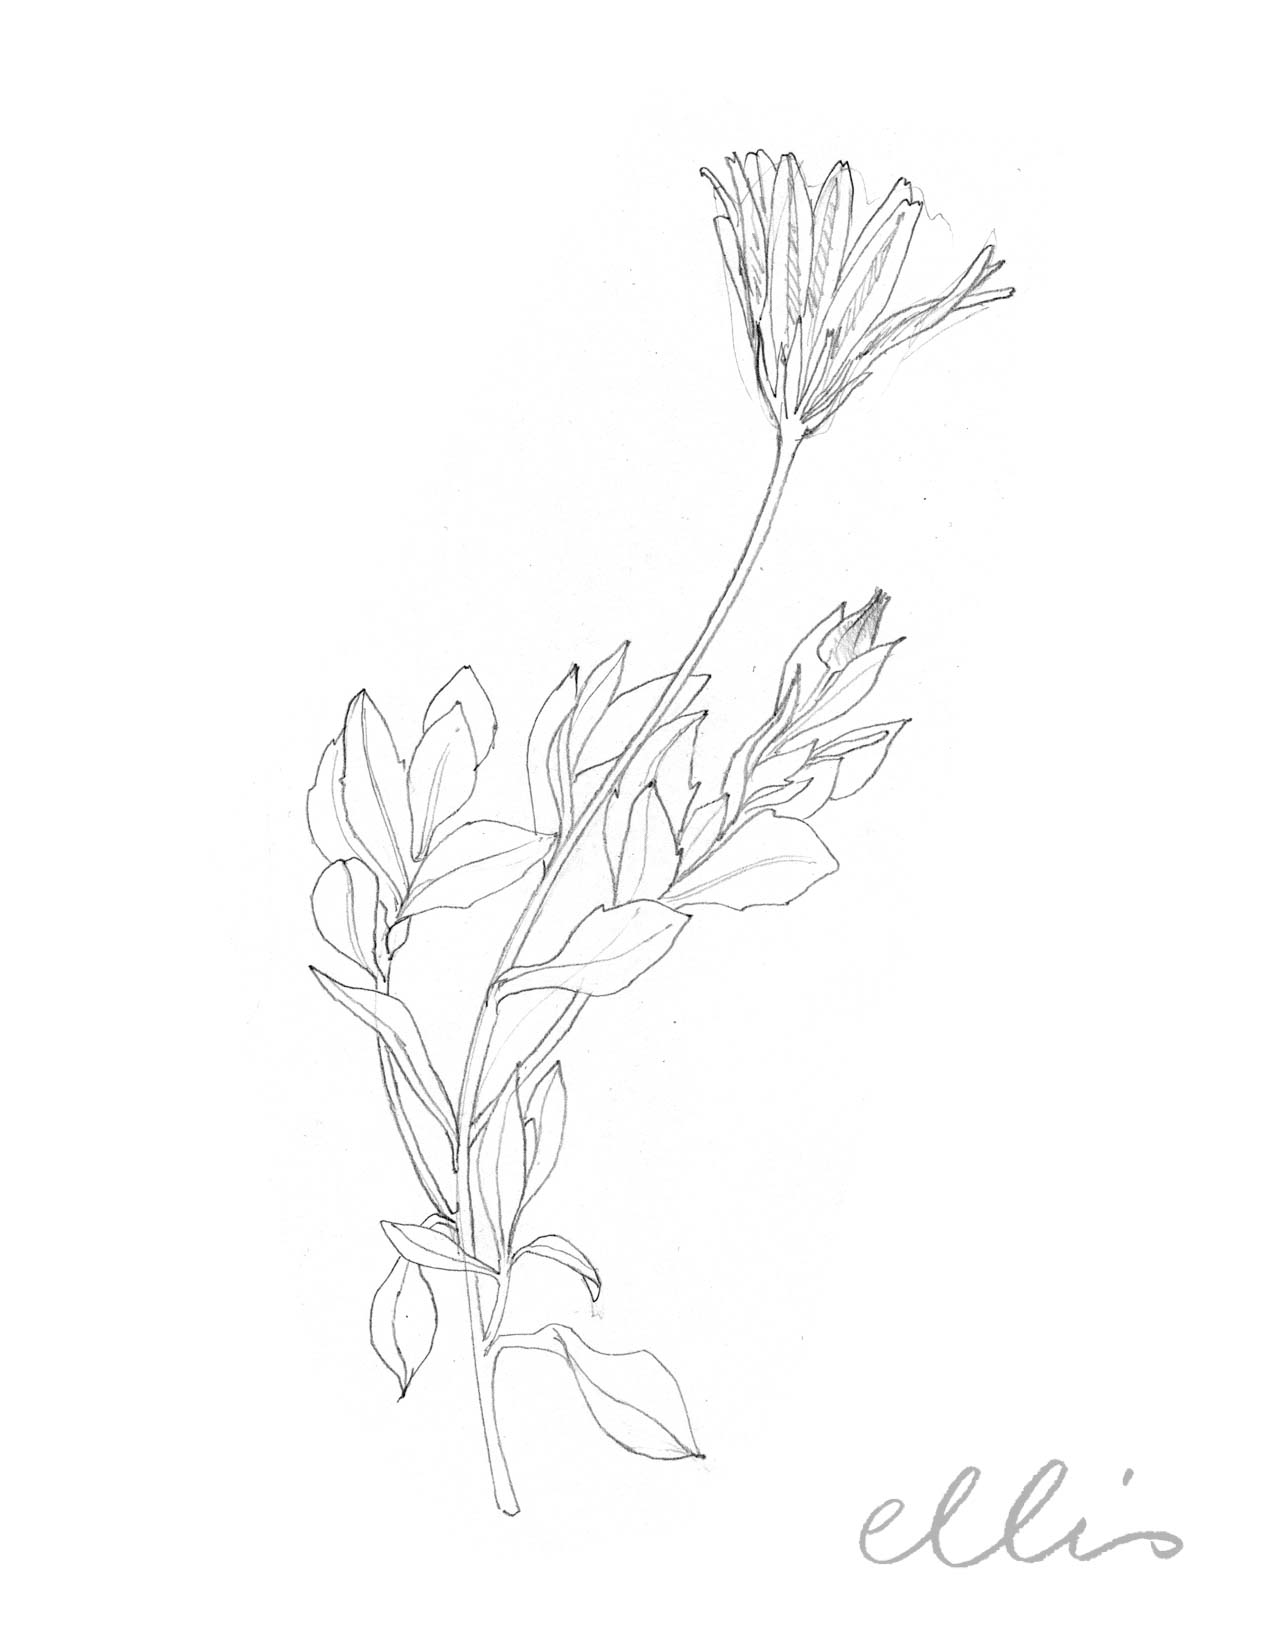 Erin Ellis_100 days project botanical drawings_2013-97.jpg